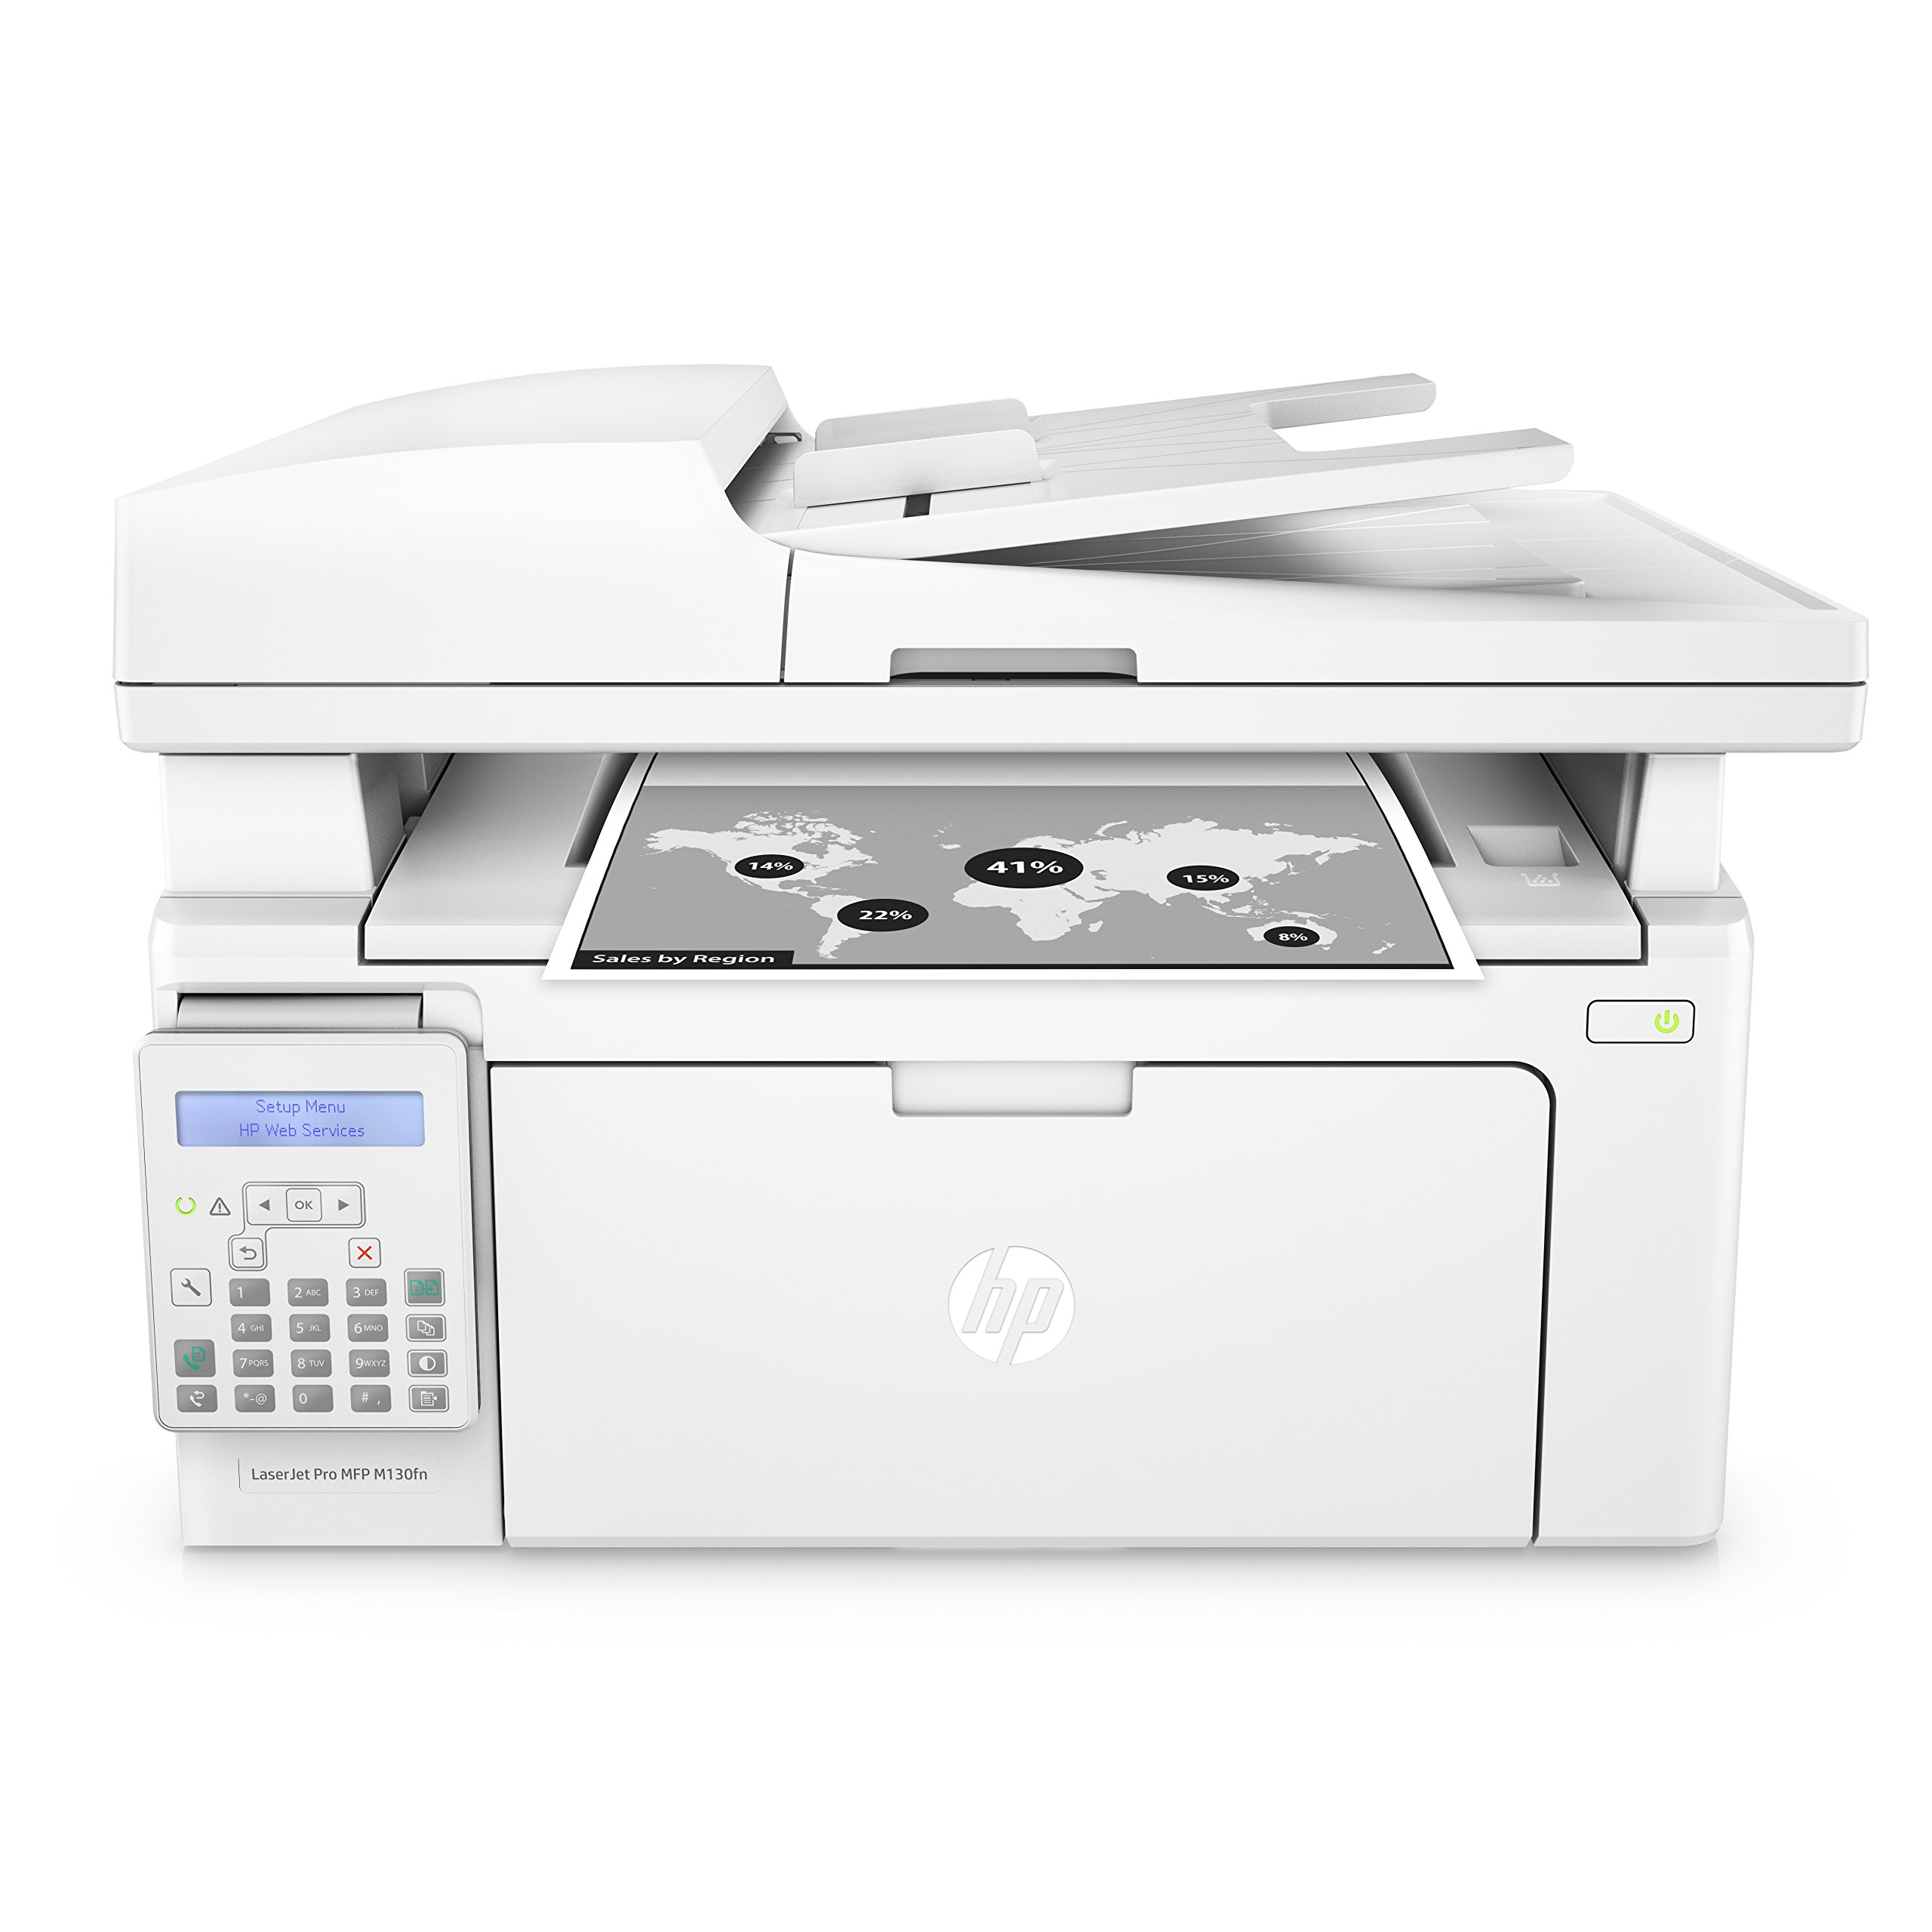 HP LaserJet Pro M130 M130fn Laser Multifunction Printer - Monochrome